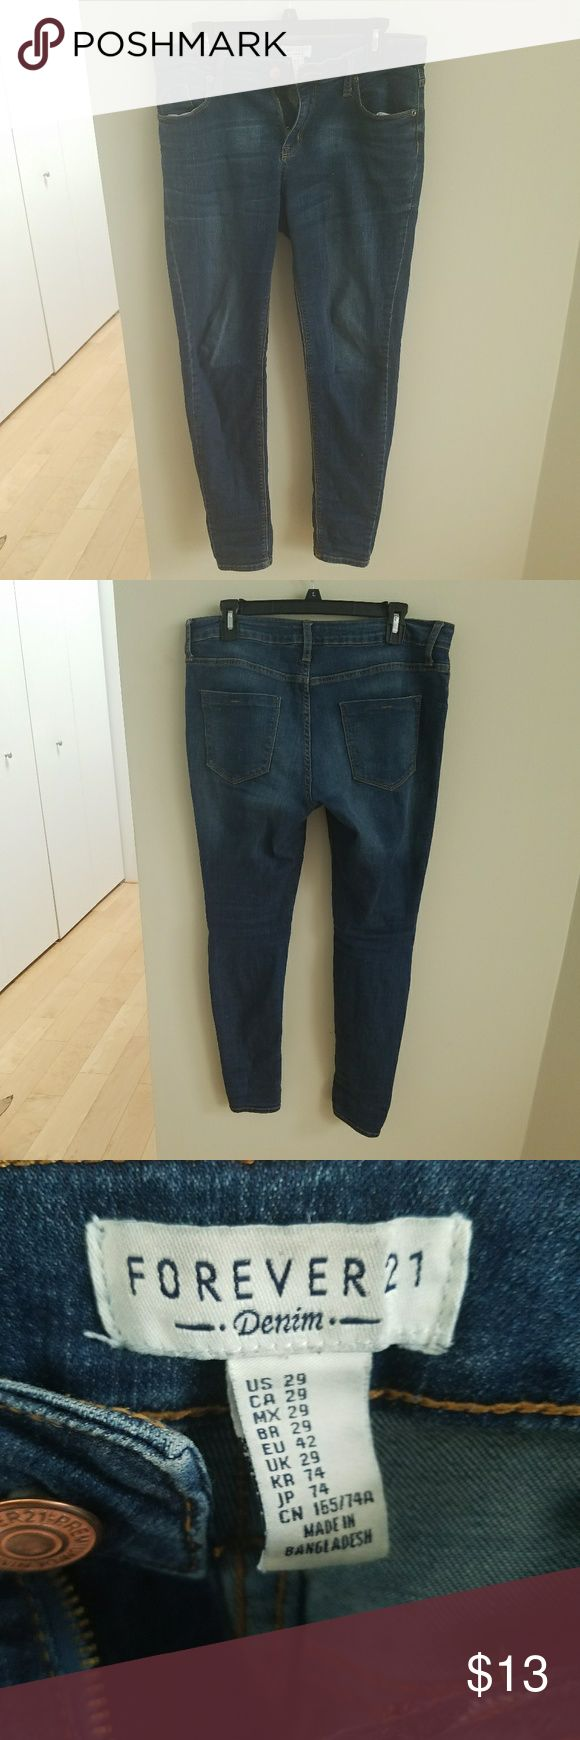 Forever 21 Skinny Jeans 29 Size 29 (I believe these fit somewhat like a women's 8-10, or a junior's 9-11). Well loved but in great condition. No rips,tears,or stains. Price firm. Final price. Forever 21 Jeans Skinny